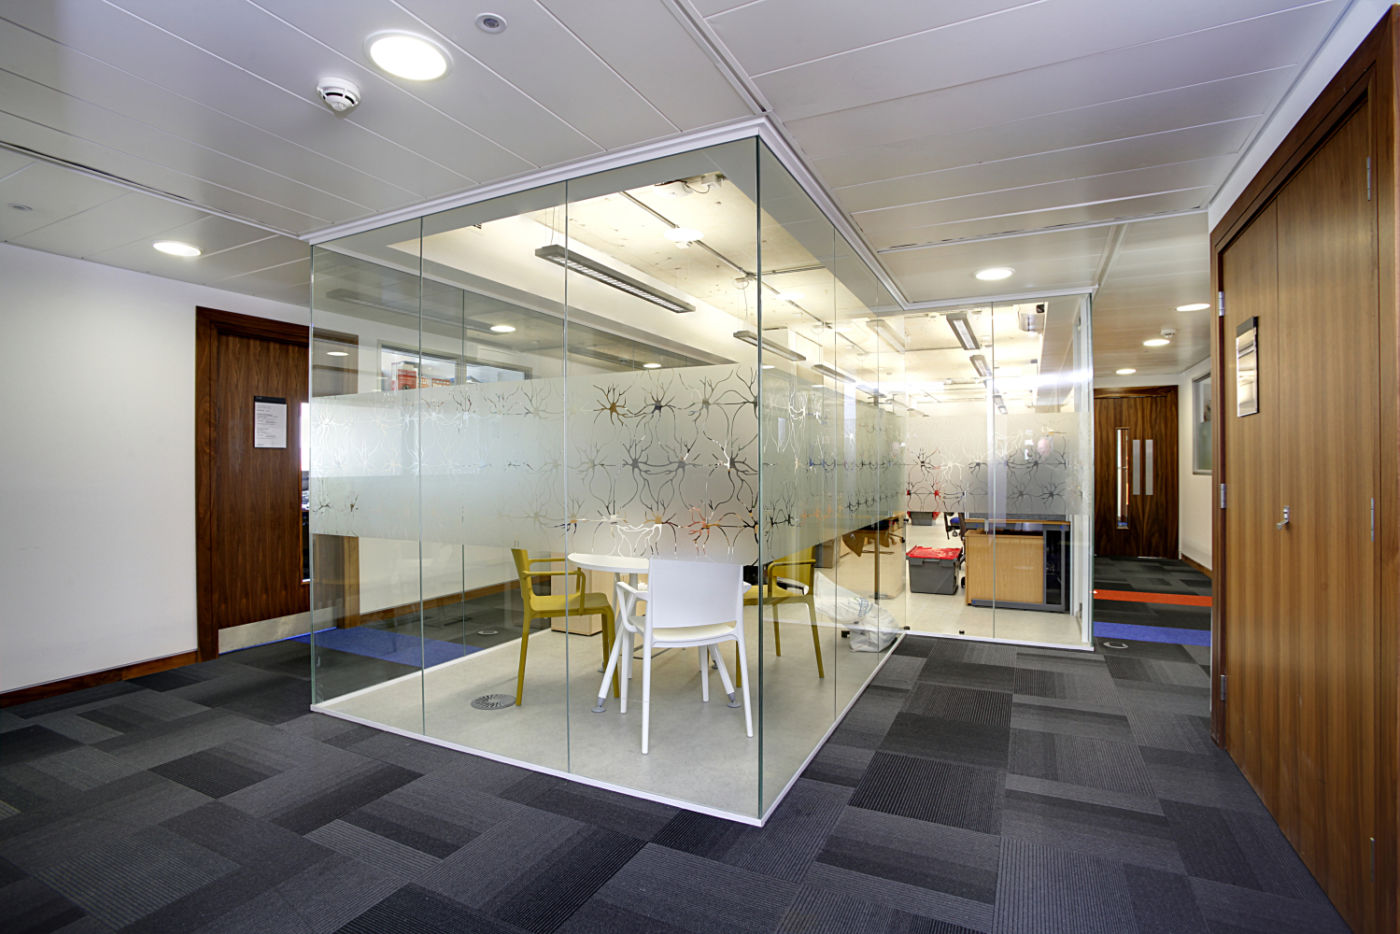 View of meeting room area